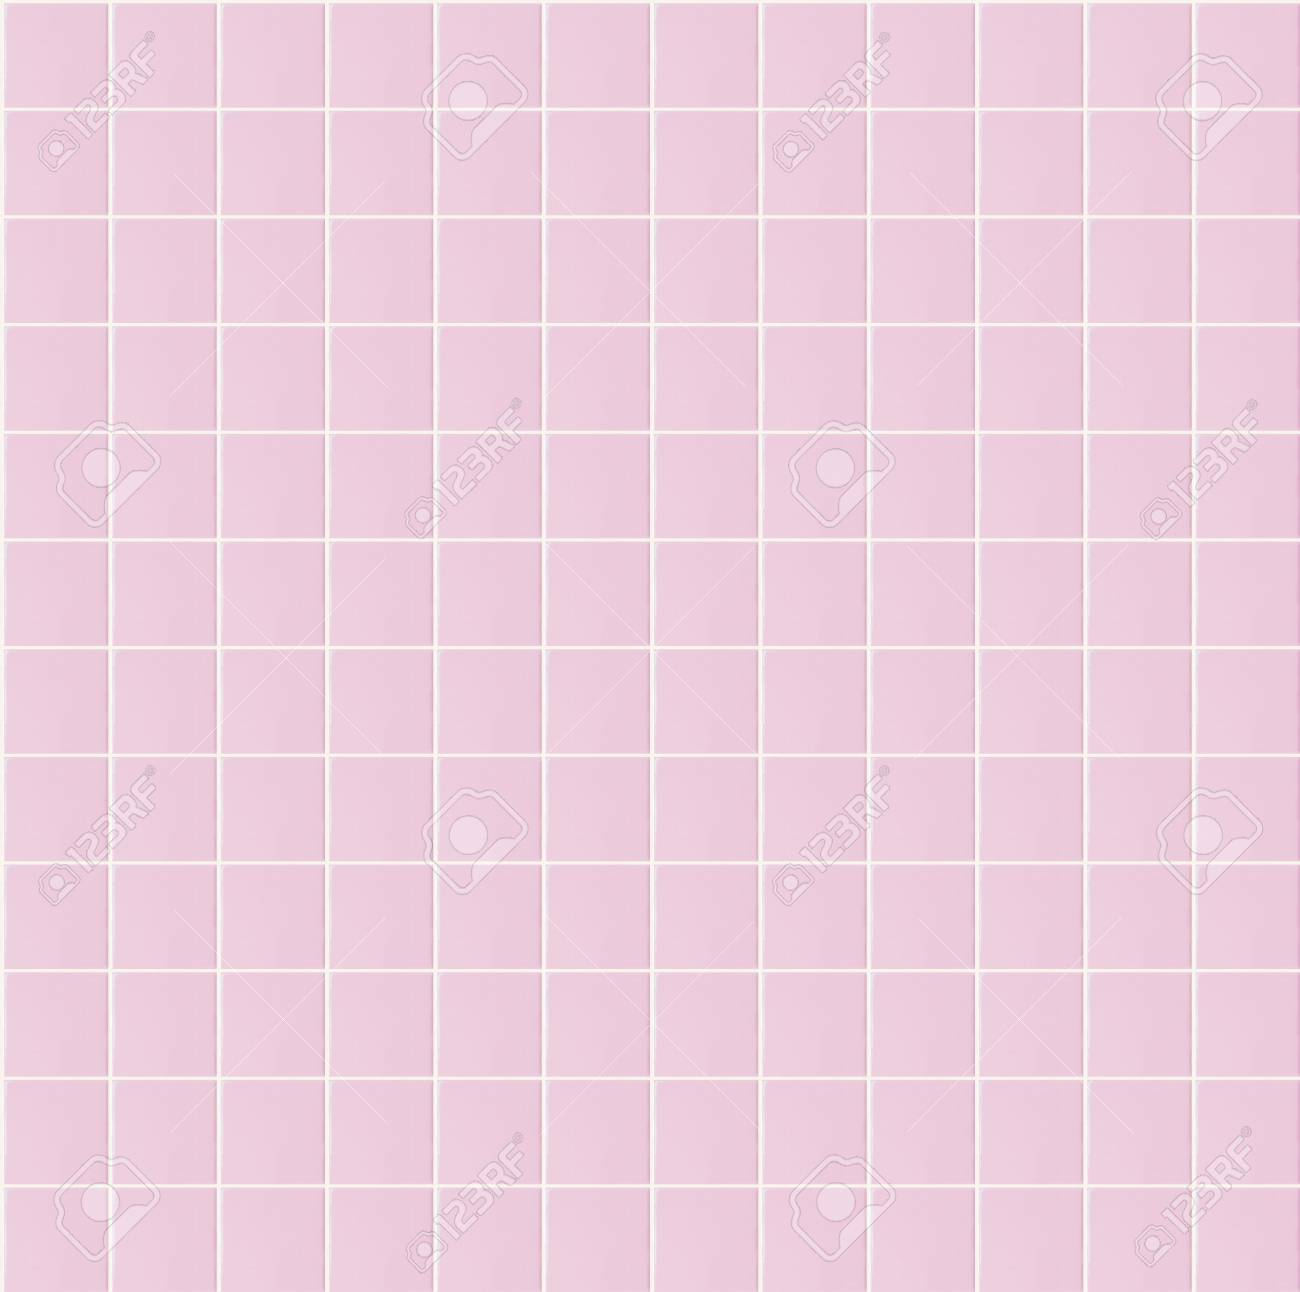 Light Pink Seamless Pattern Tile Wall Texture Background For Interior Home Bathroom Design Or 3d